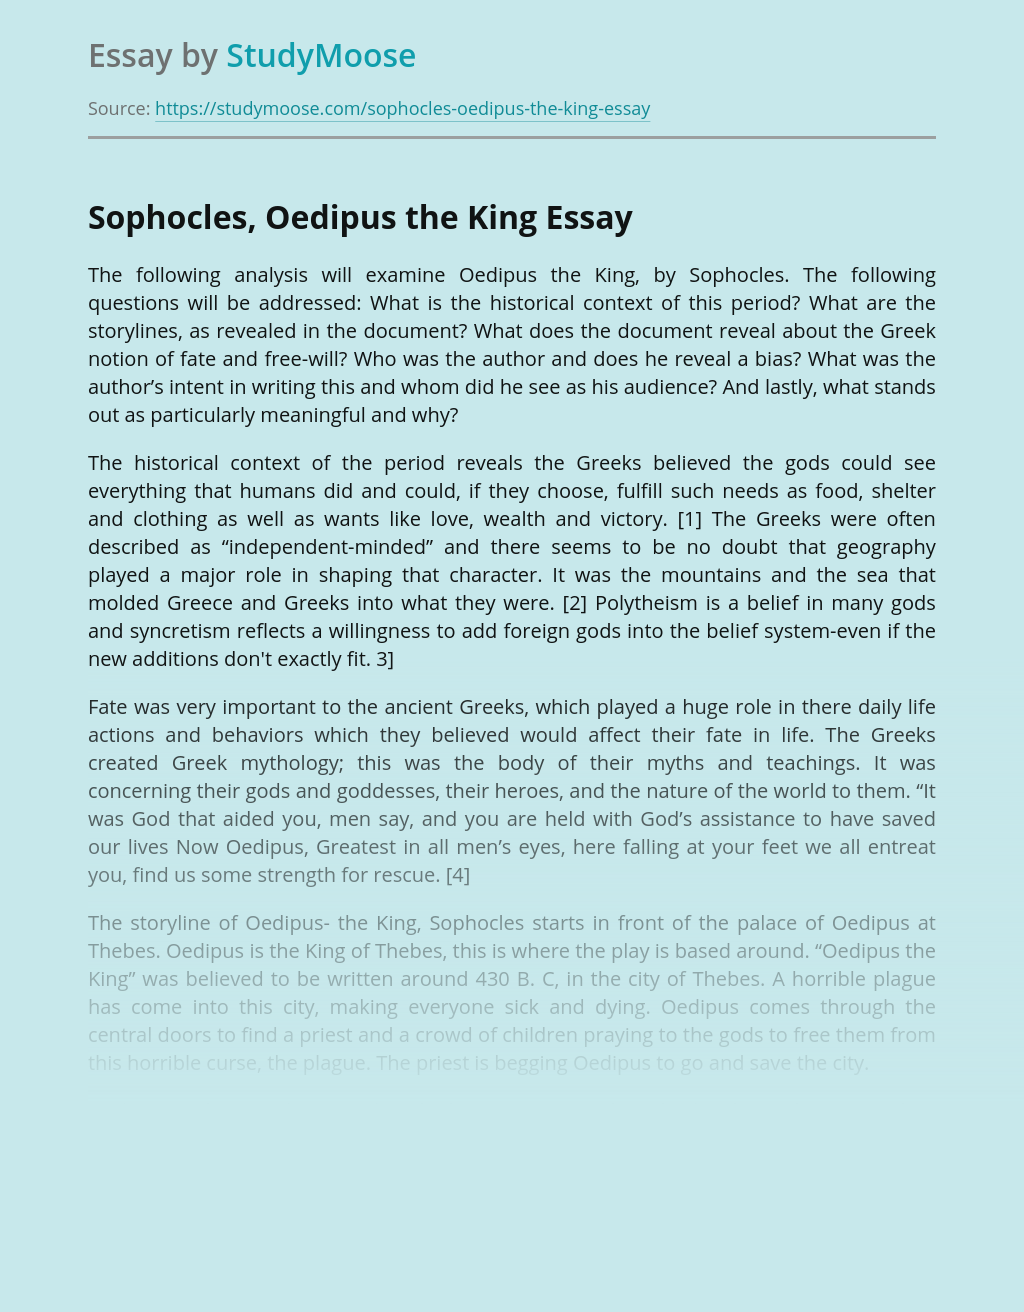 Sophocles, Oedipus the King